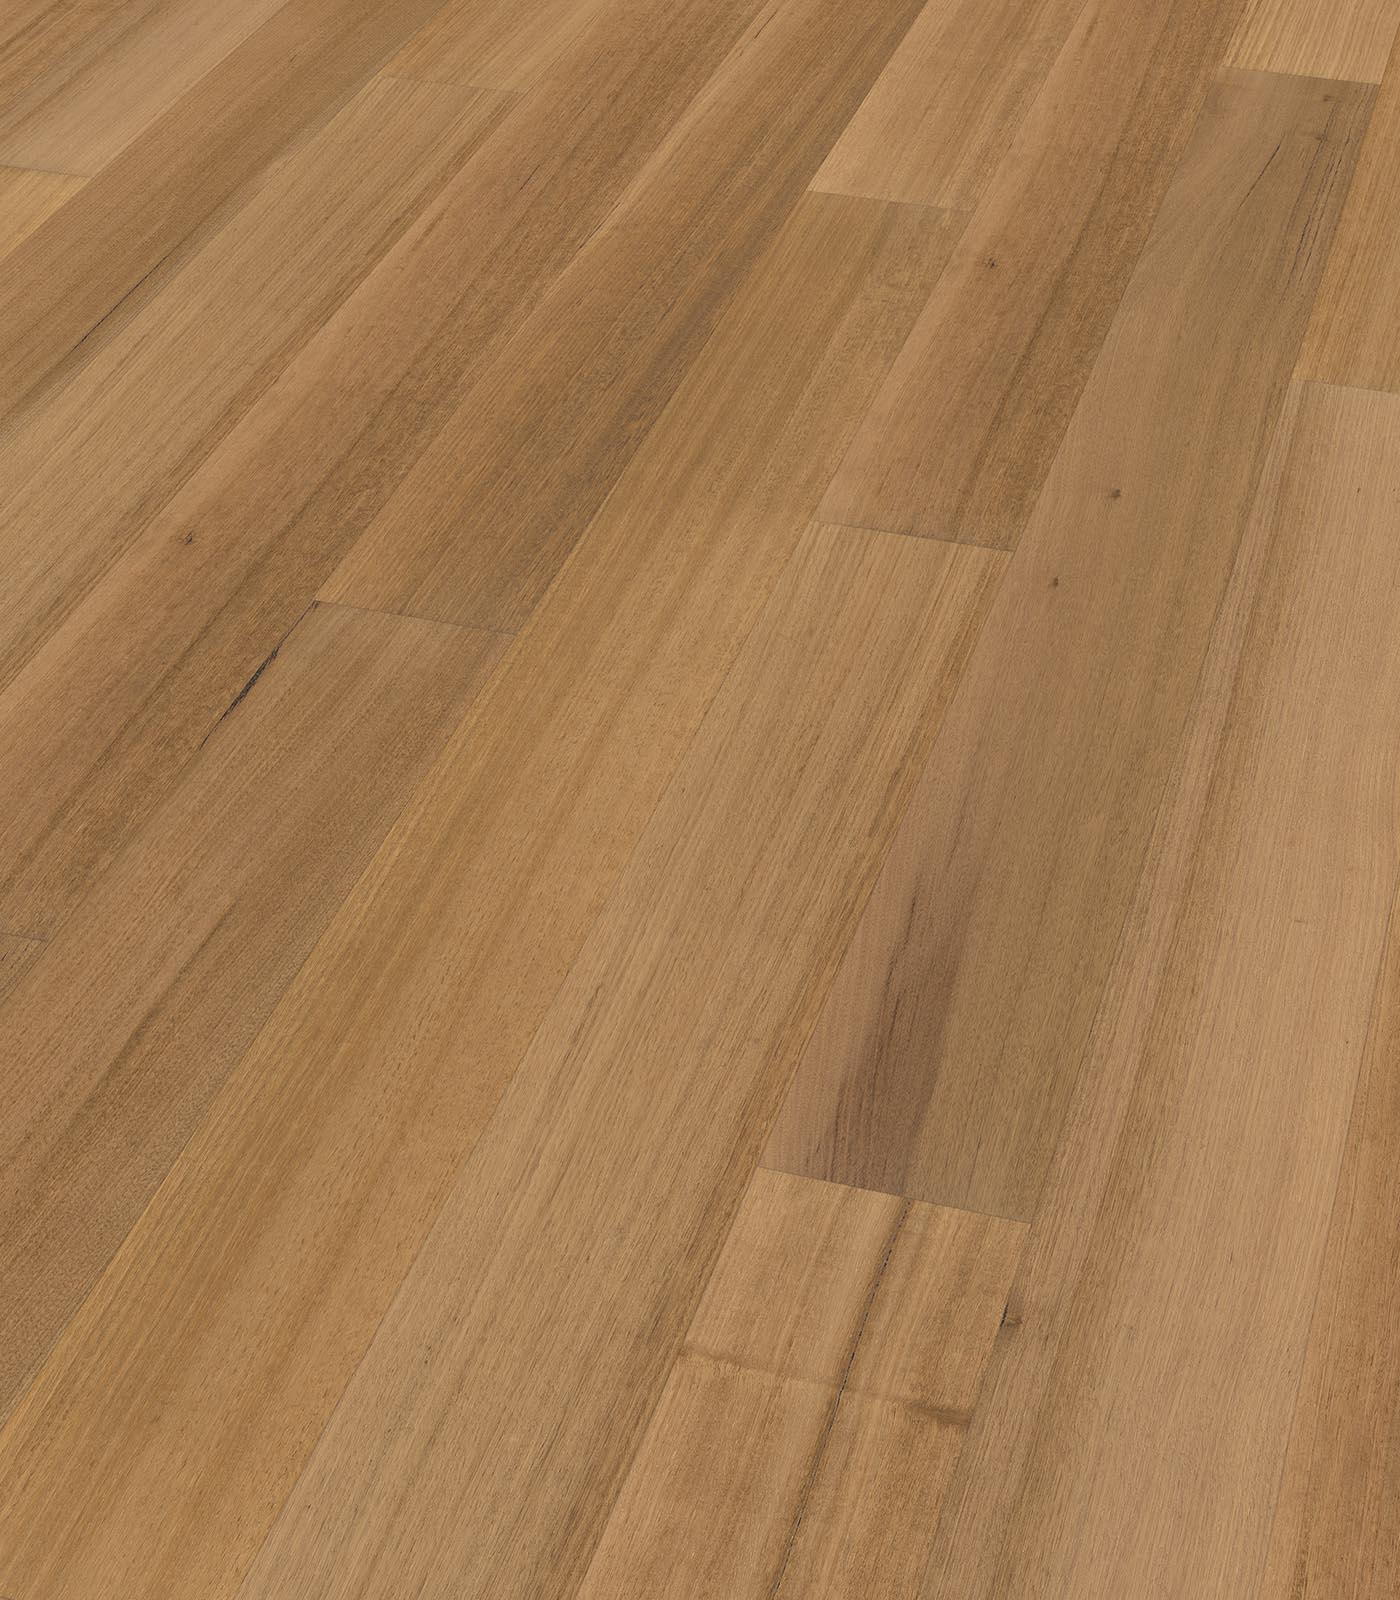 New Castle-After Oak Collection-Tasmanian Oak Floors-angle